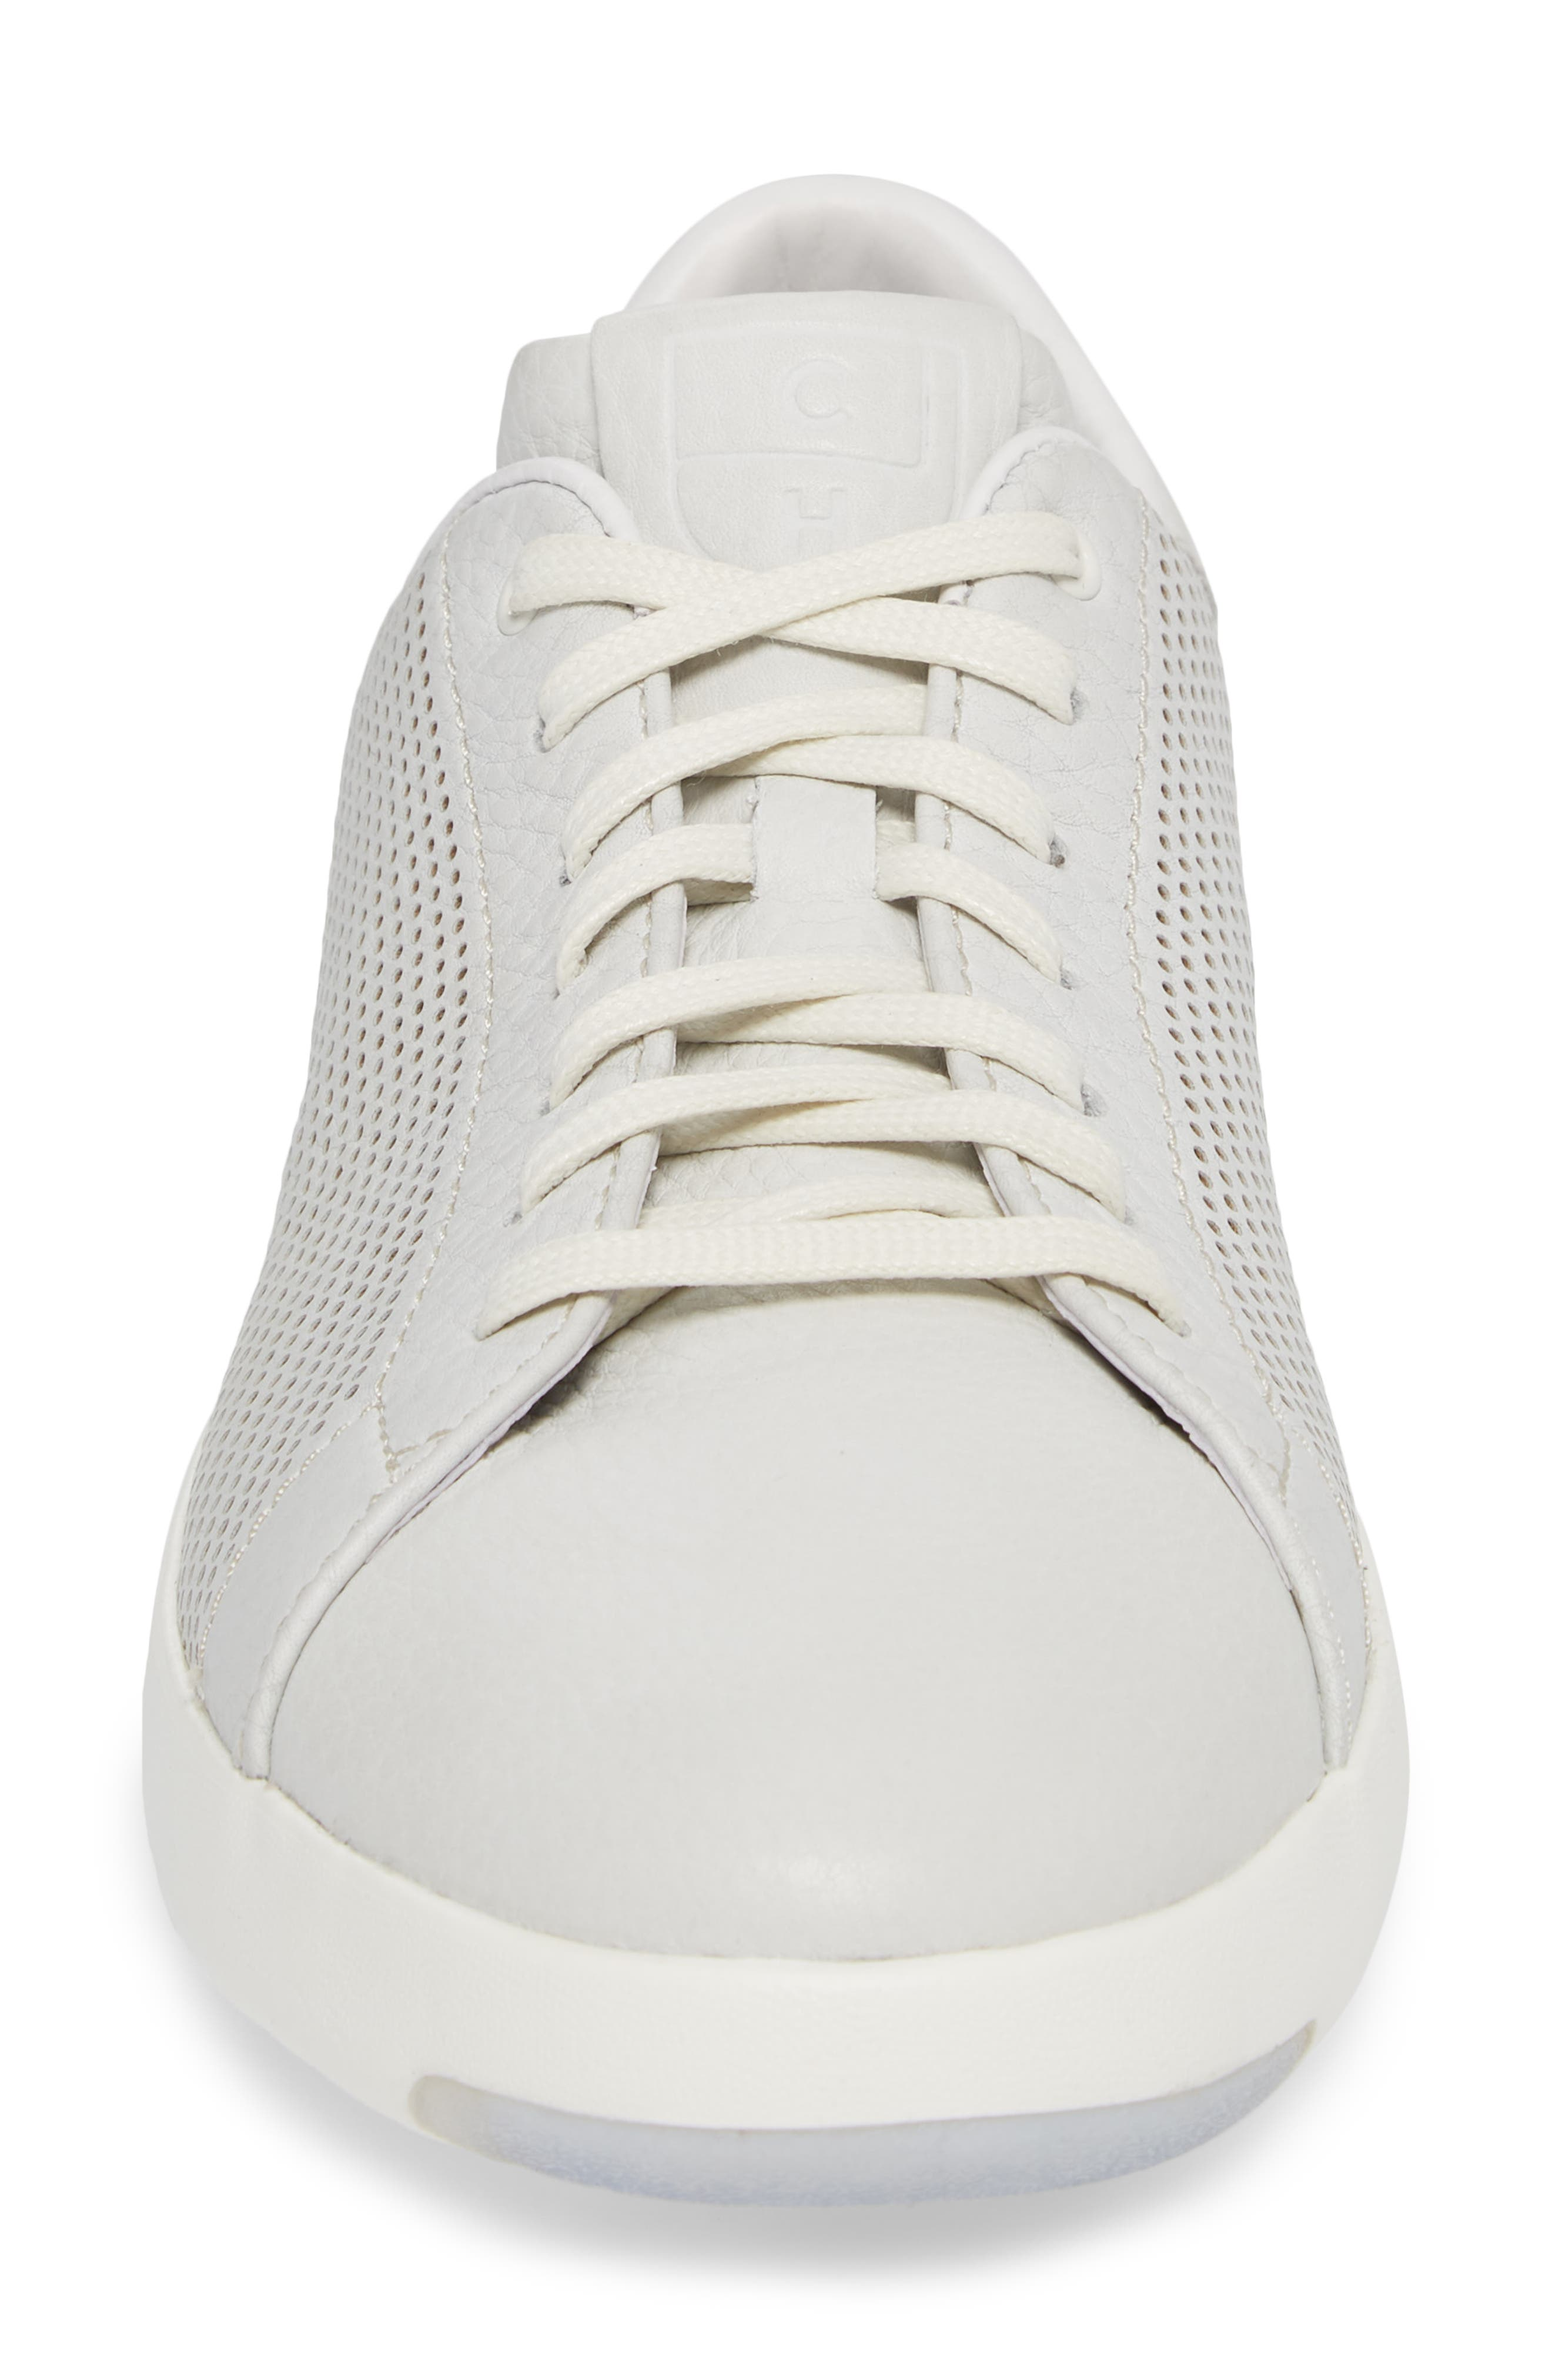 GrandPrø Perforated Low Top Sneaker,                             Alternate thumbnail 4, color,                             WHITE TUM LEATHER